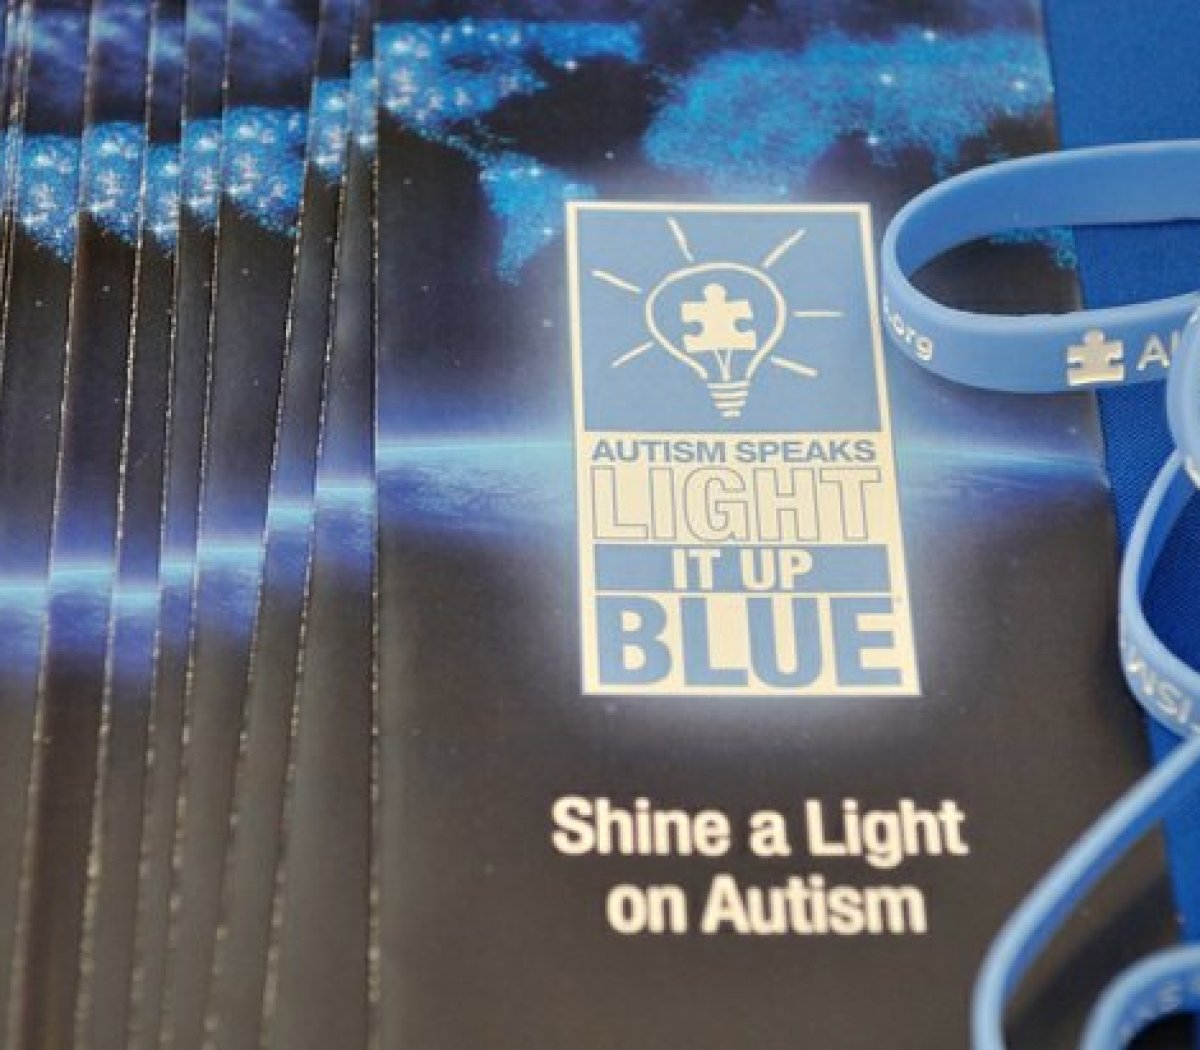 Literature available to attendees at the Autism Speaks Light It Up Blue event at the THEARC, Saturday, April 2, 2016 in Southeast. /Photo by Patricia Little @5feet2